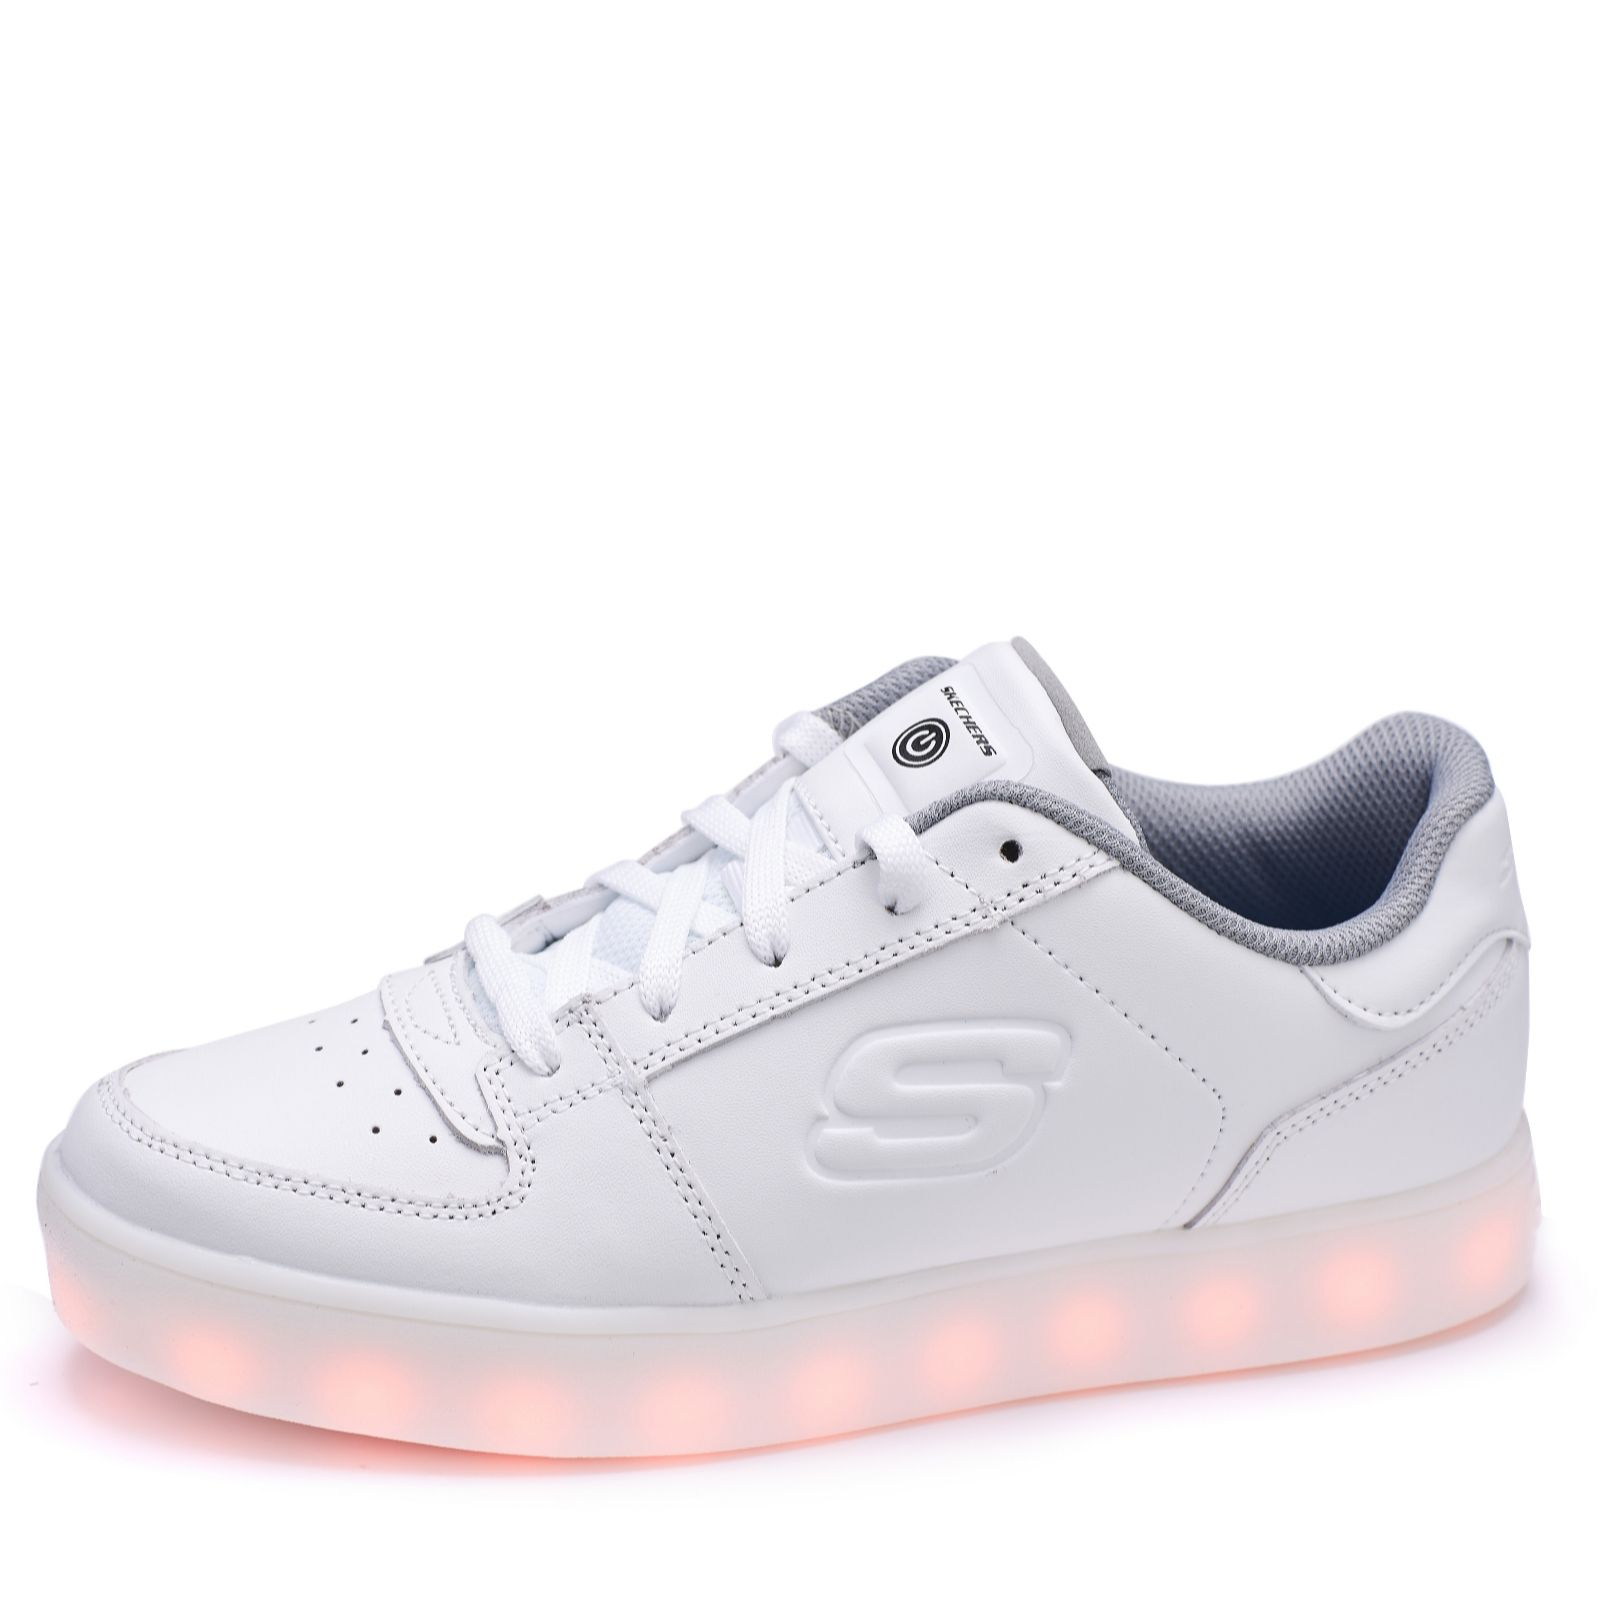 fbb57385a92 Skechers Kid s Energy Lights Elate Lace Up Trainer with Hidden Lights - QVC  UK